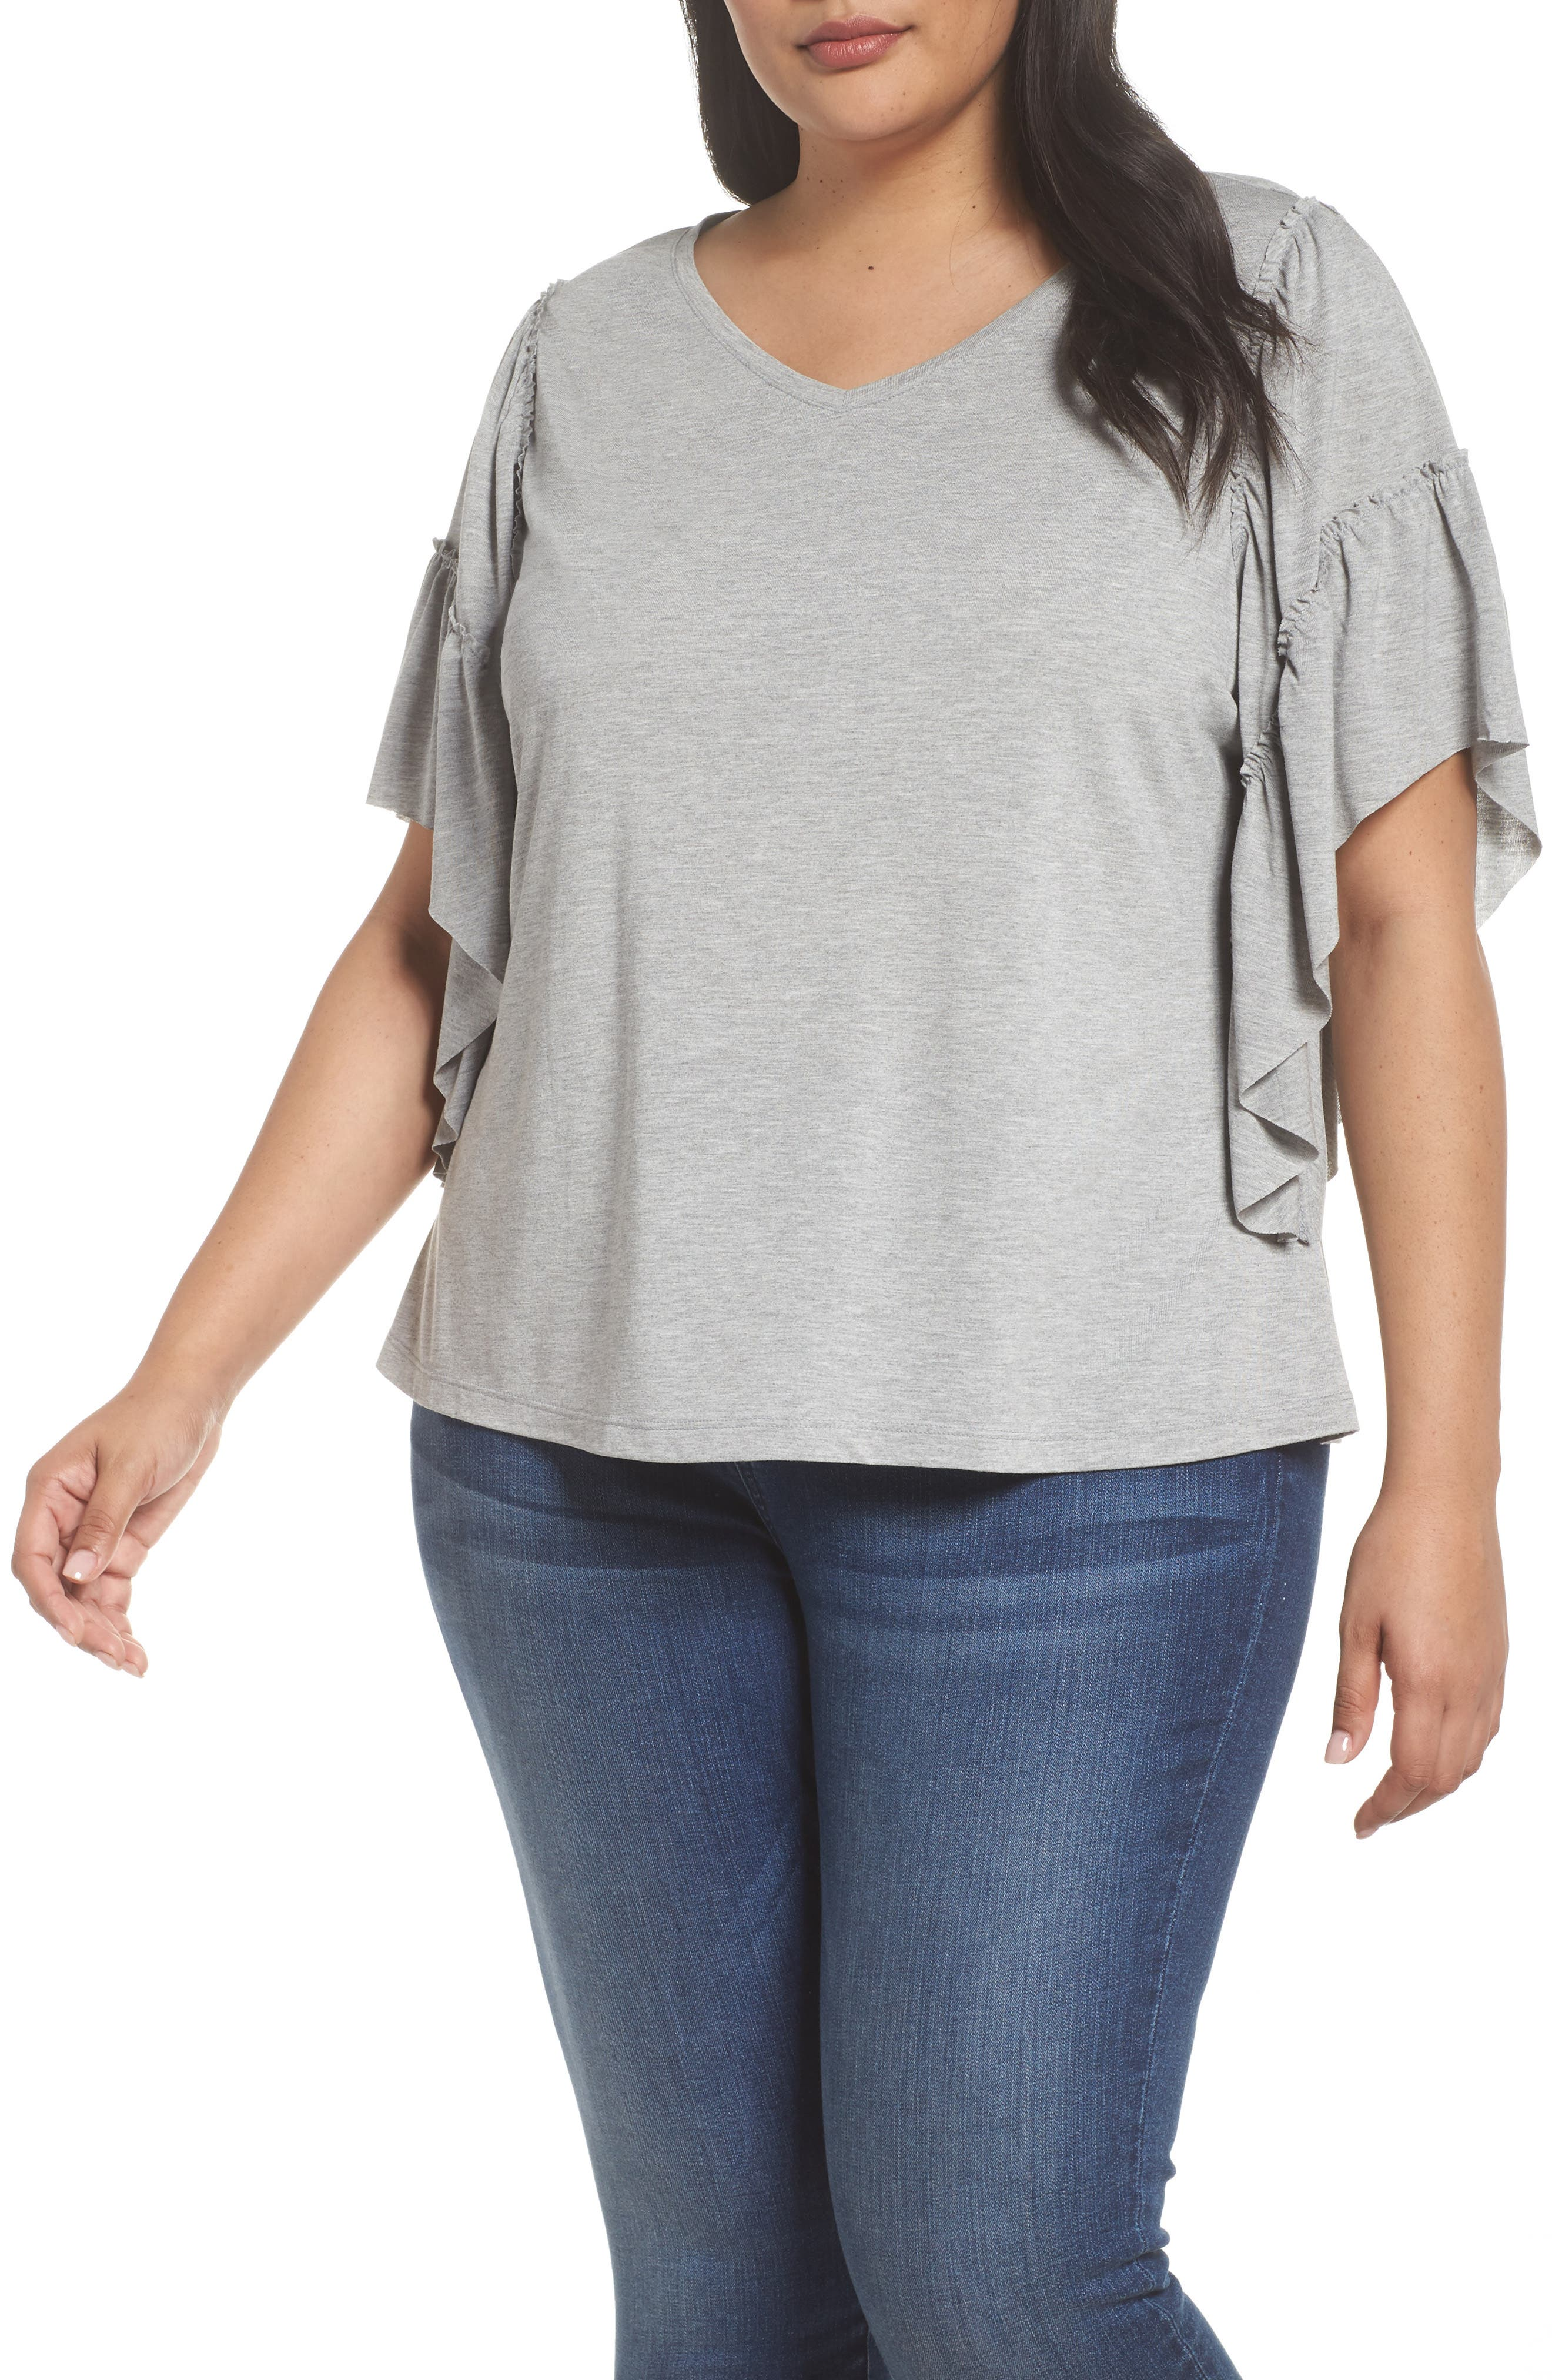 Main Image - Sejour Frill Sleeve Tee (Plus Size)